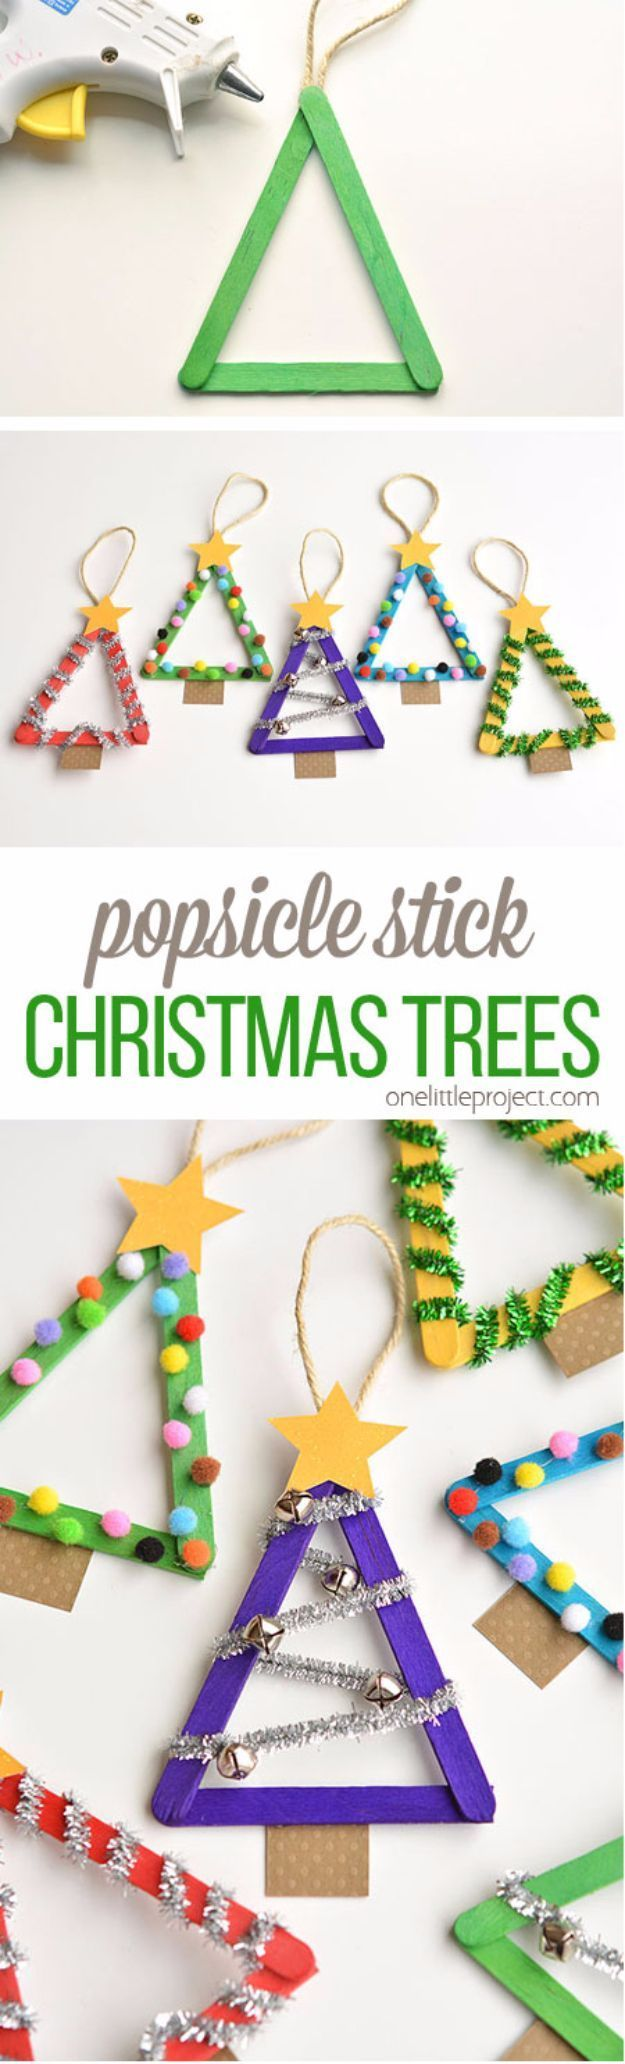 36 Best DIY Ideas For Your Christmas Tree